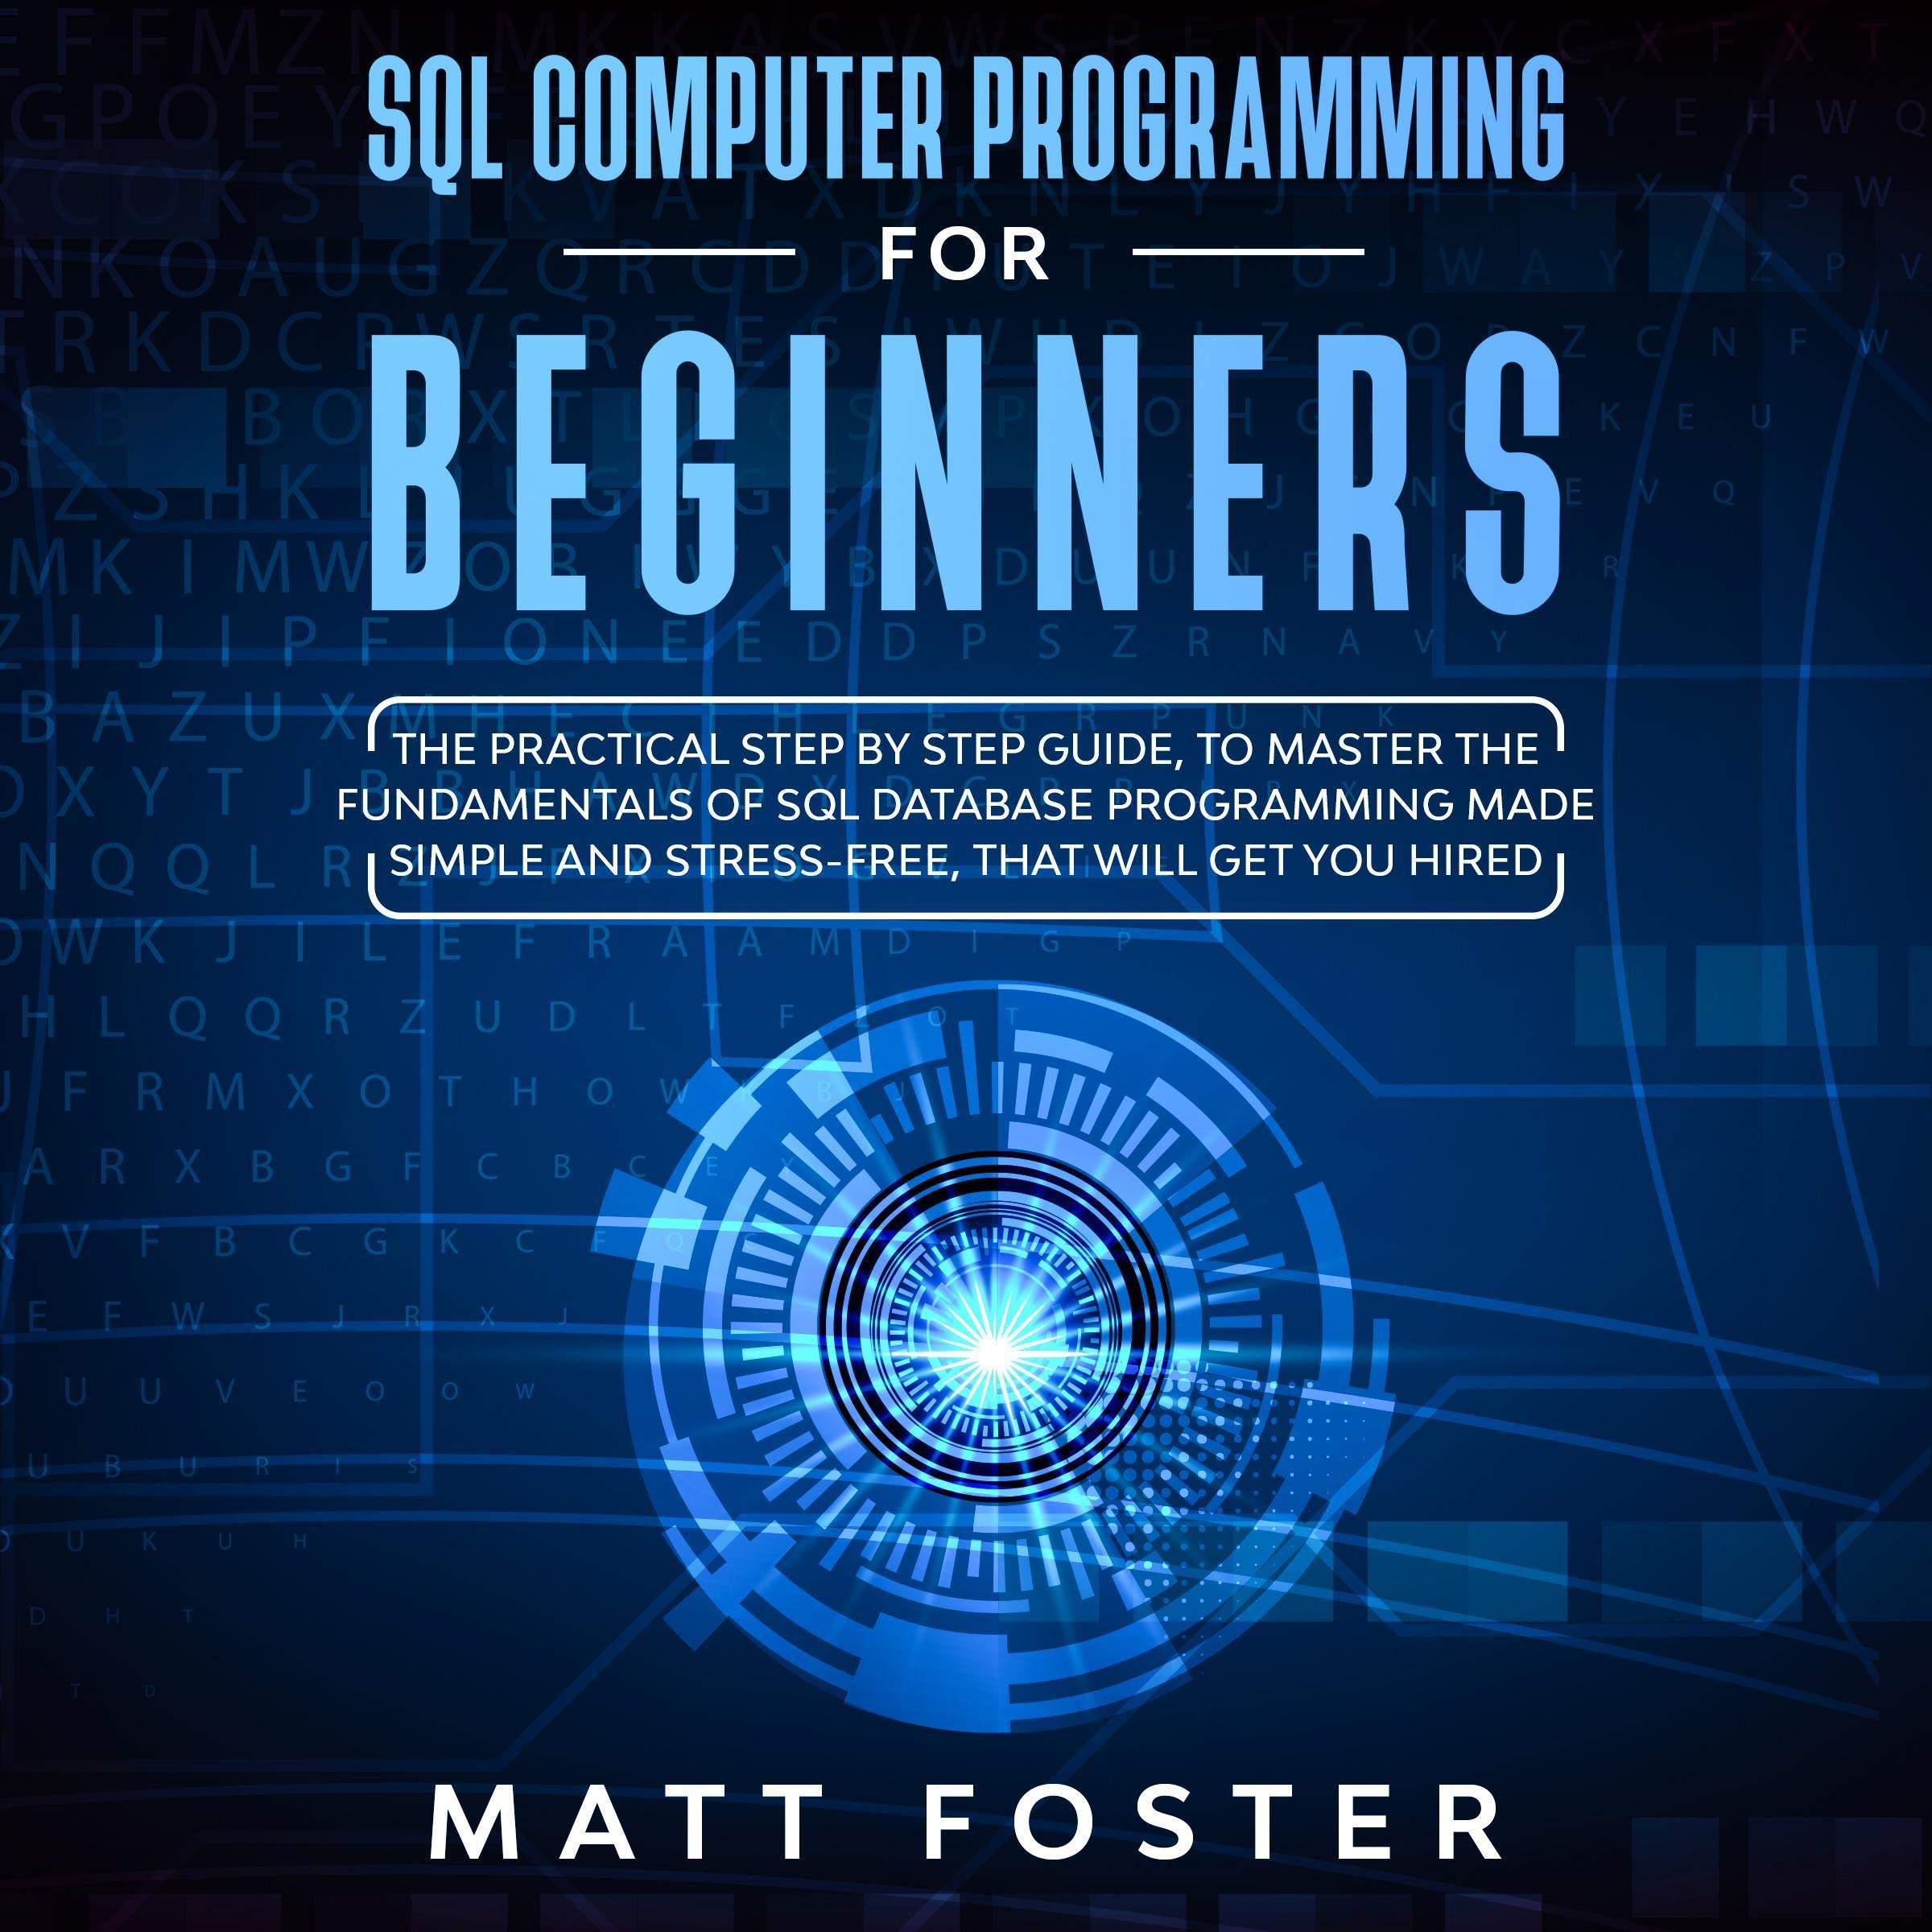 SQL Computer Programming for Beginners: The Practical Step by Step Guide, to Master the Fundamentals of SQL Database Programming Made Simple and Stress-Free, That Will Get You Hired